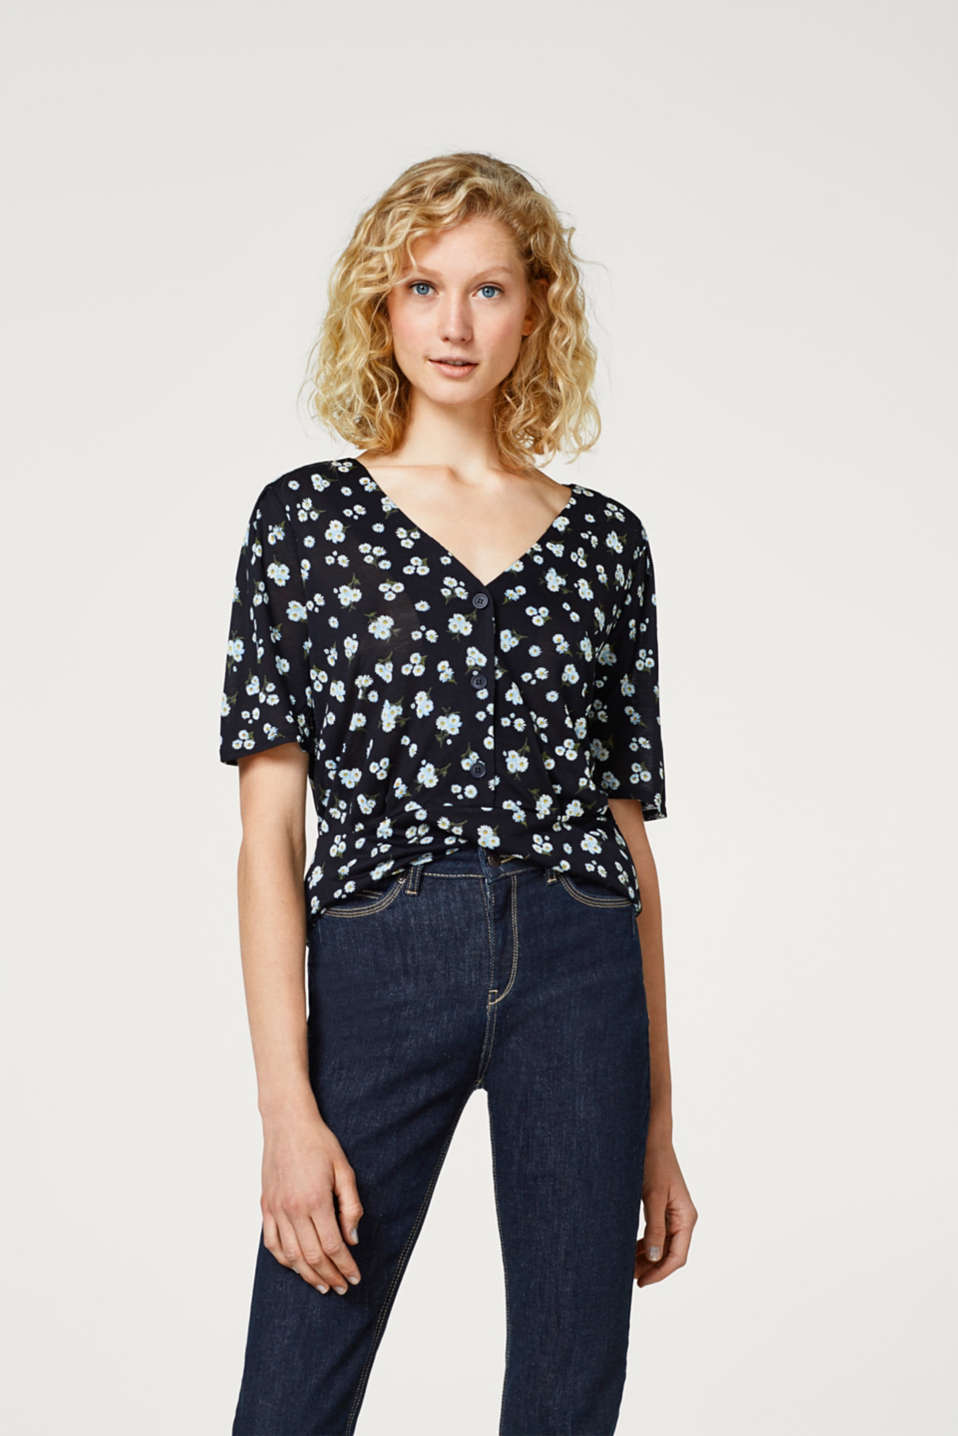 Esprit - Jersey T-shirt with a floral print and button placket